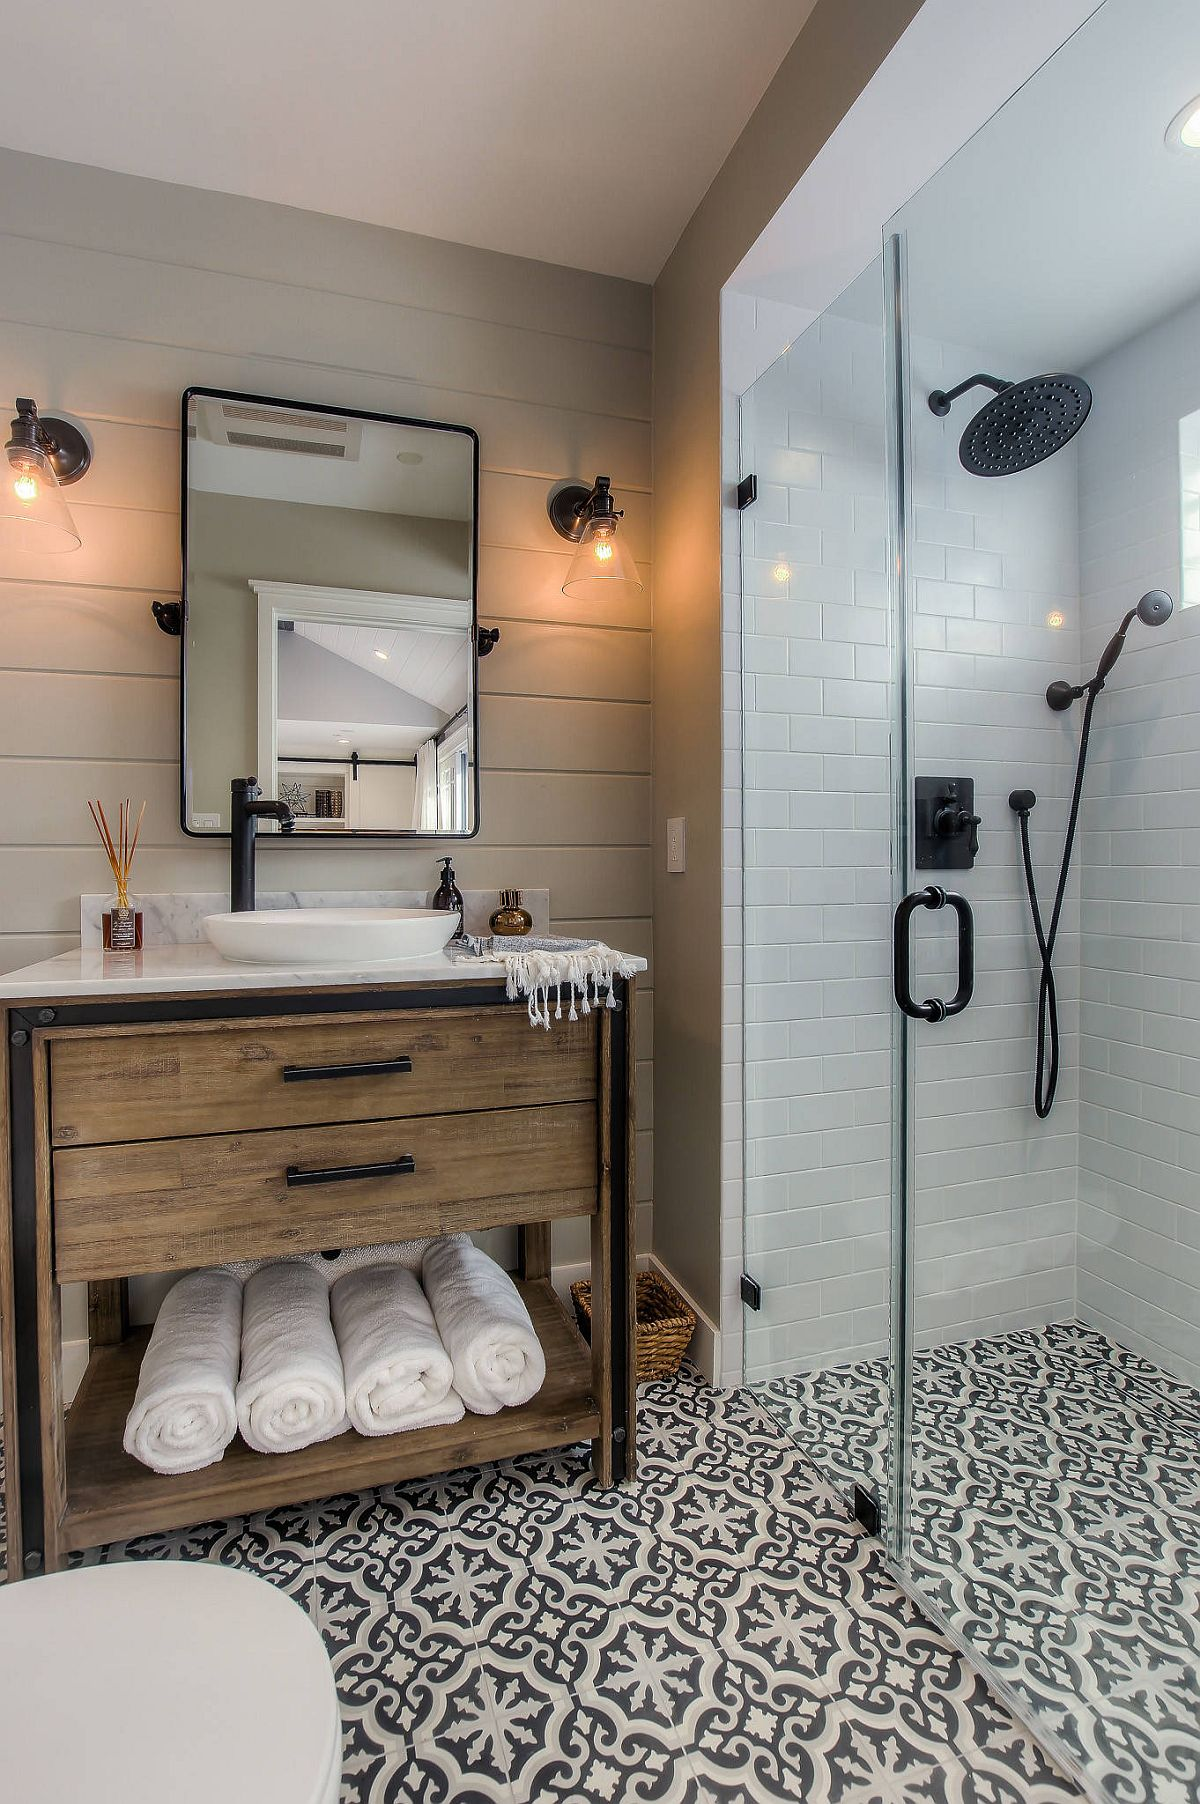 Understated-sconce-lights-in-the-bathroom-keep-the-focus-firmly-on-the-vanity-85037